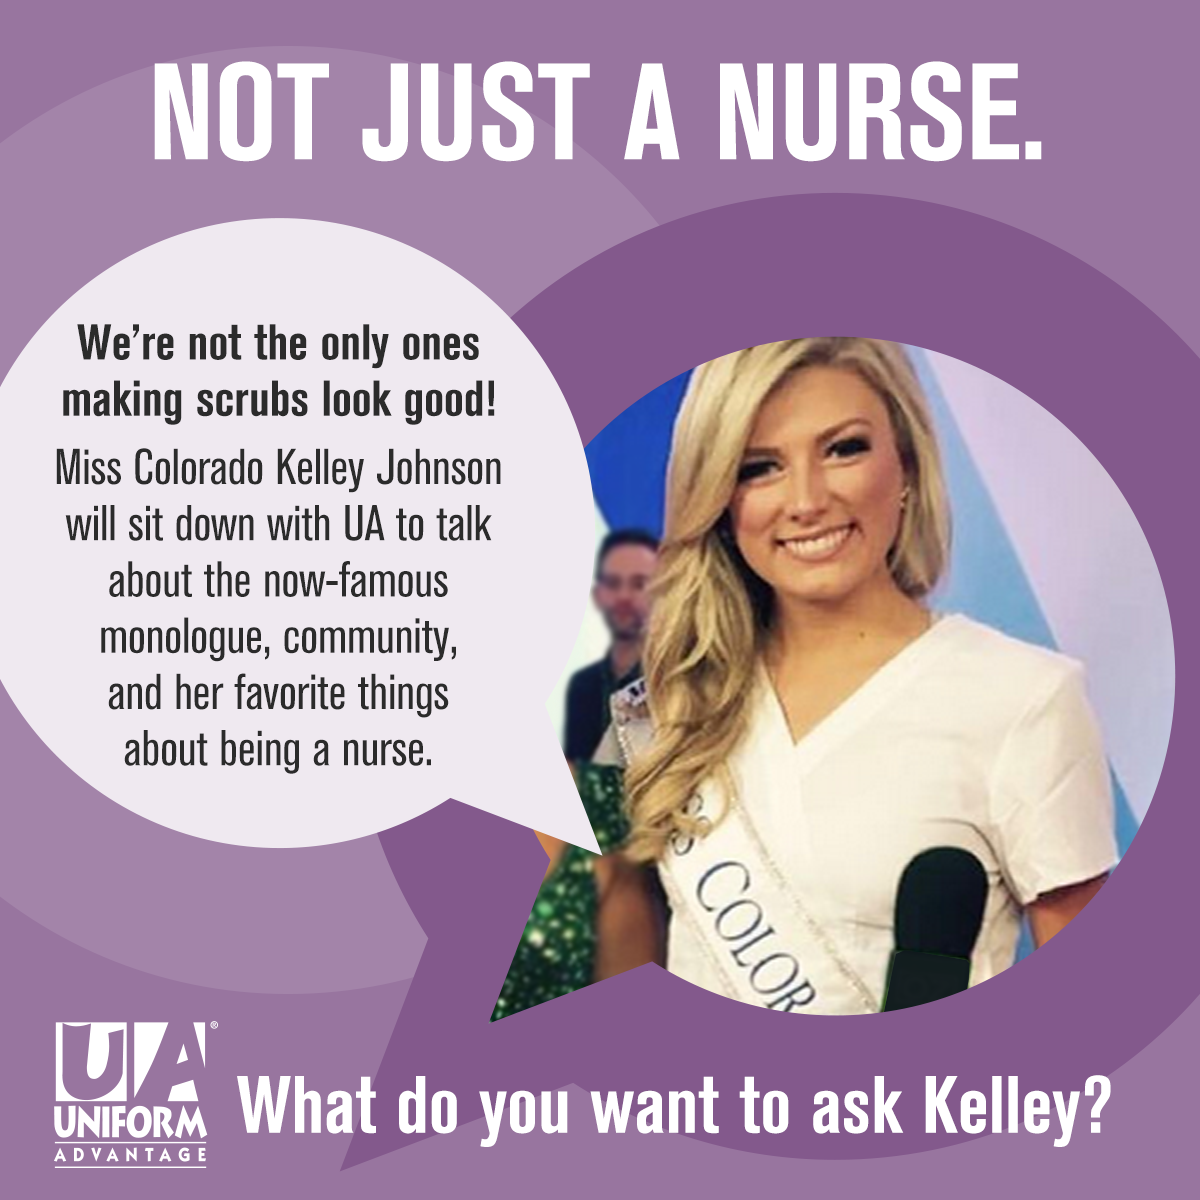 ua a day in scrubs uawhat do you want to ask kelley johnson miss colorado 2015